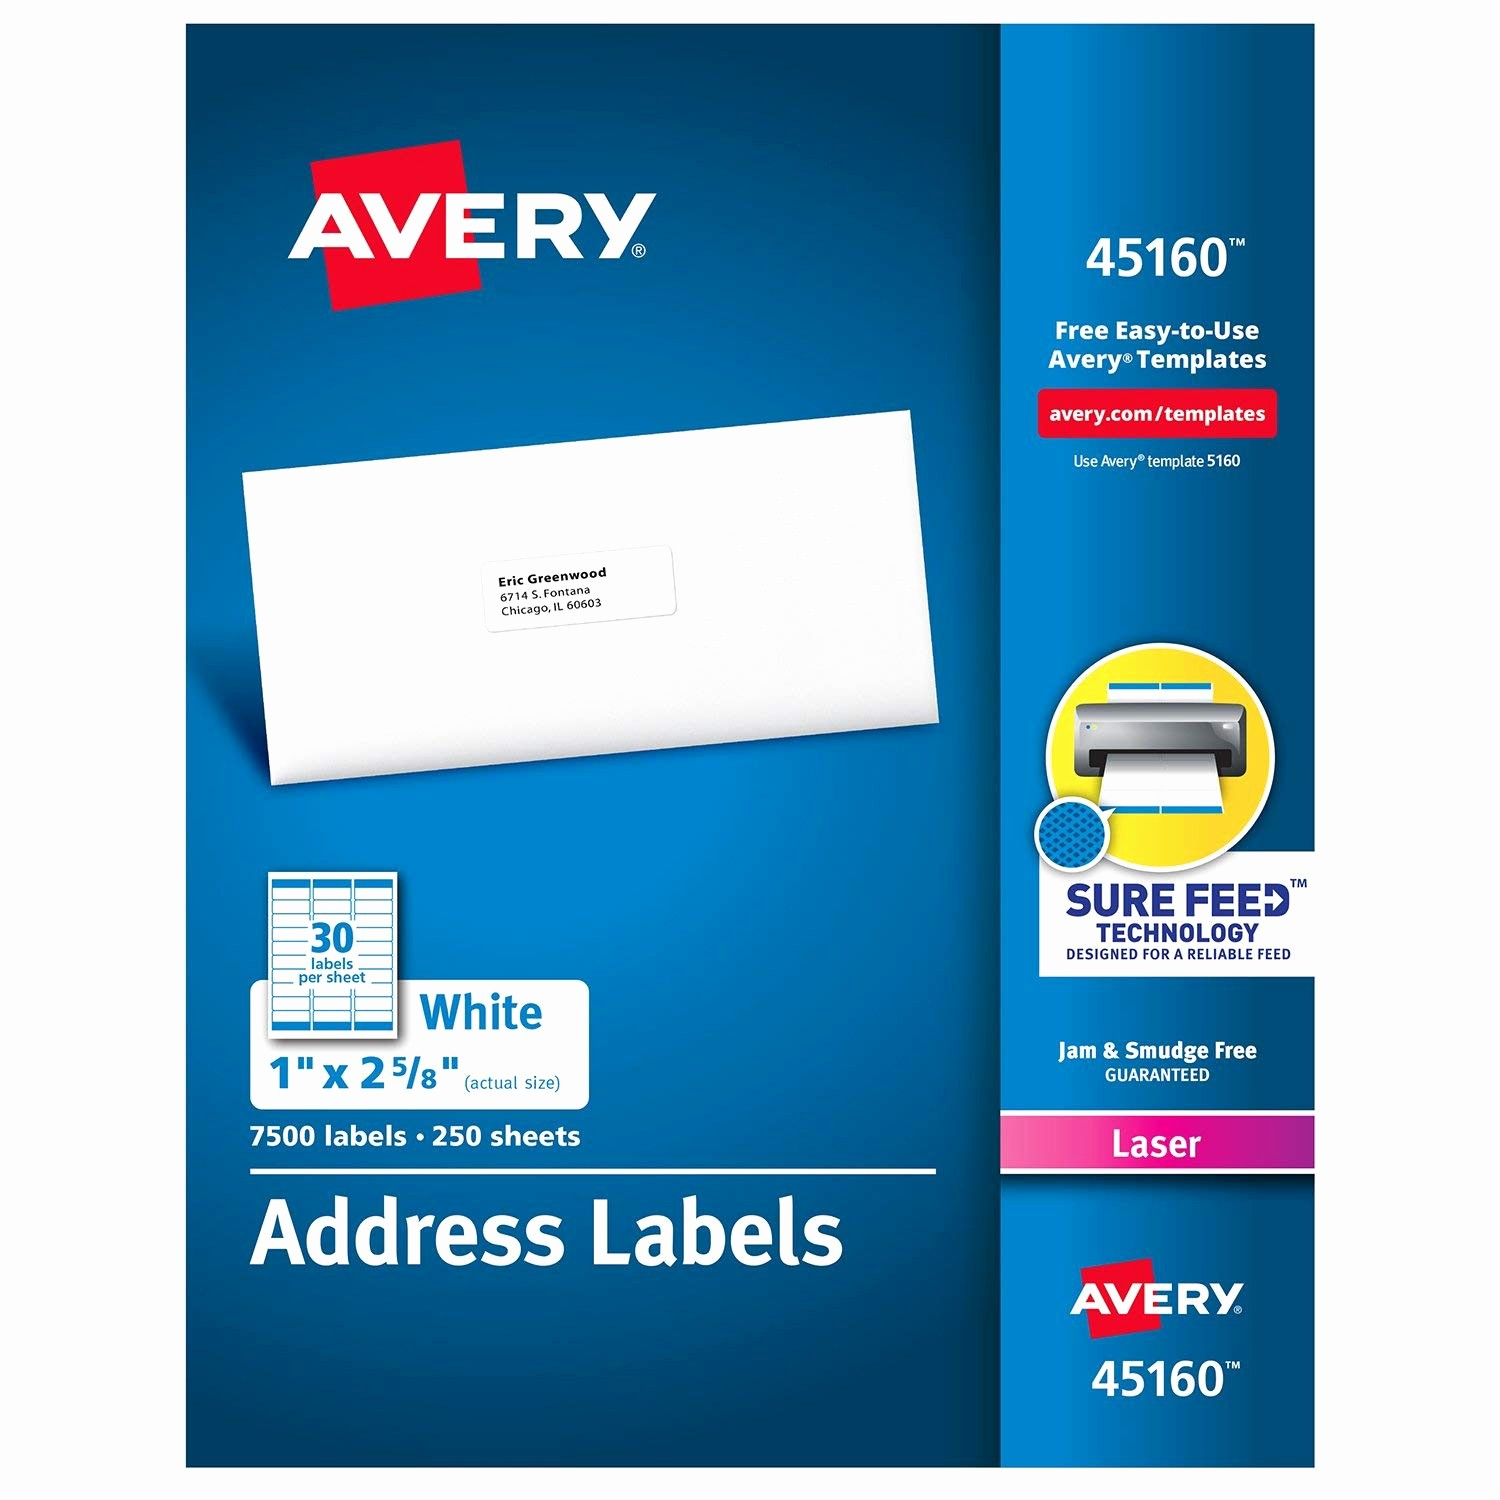 Avery Template 5263 Free Download Awesome Avery 6578 Template Avery Label Template 5263 Unbelievable